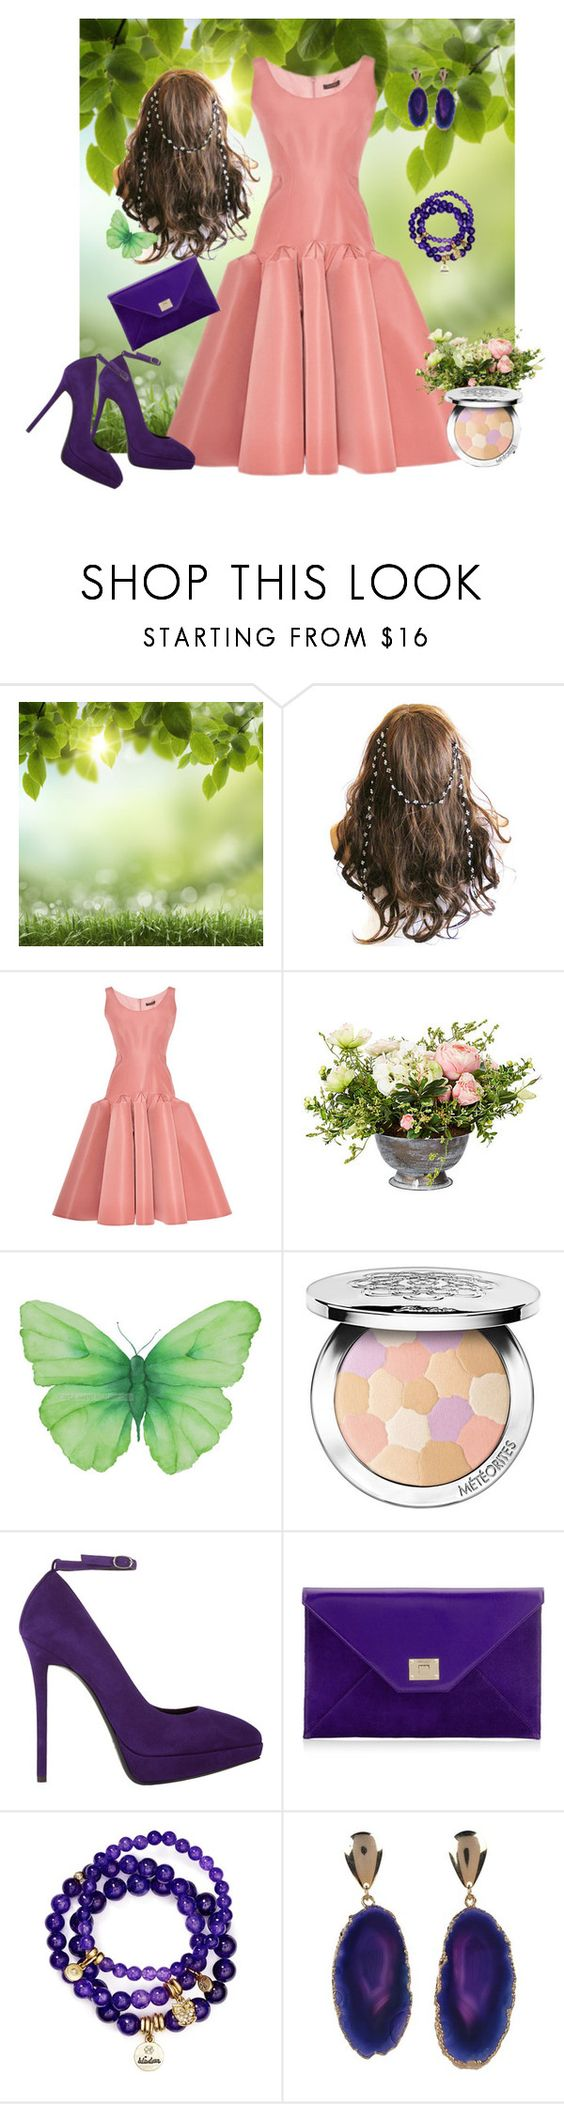 """""""Dreaming of Spring!"""" by armband ❤ liked on Polyvore featuring Zac Posen, Guerlain, Giuseppe Zanotti, Jimmy Choo, Sequin and Valerie Nahmani Designs"""